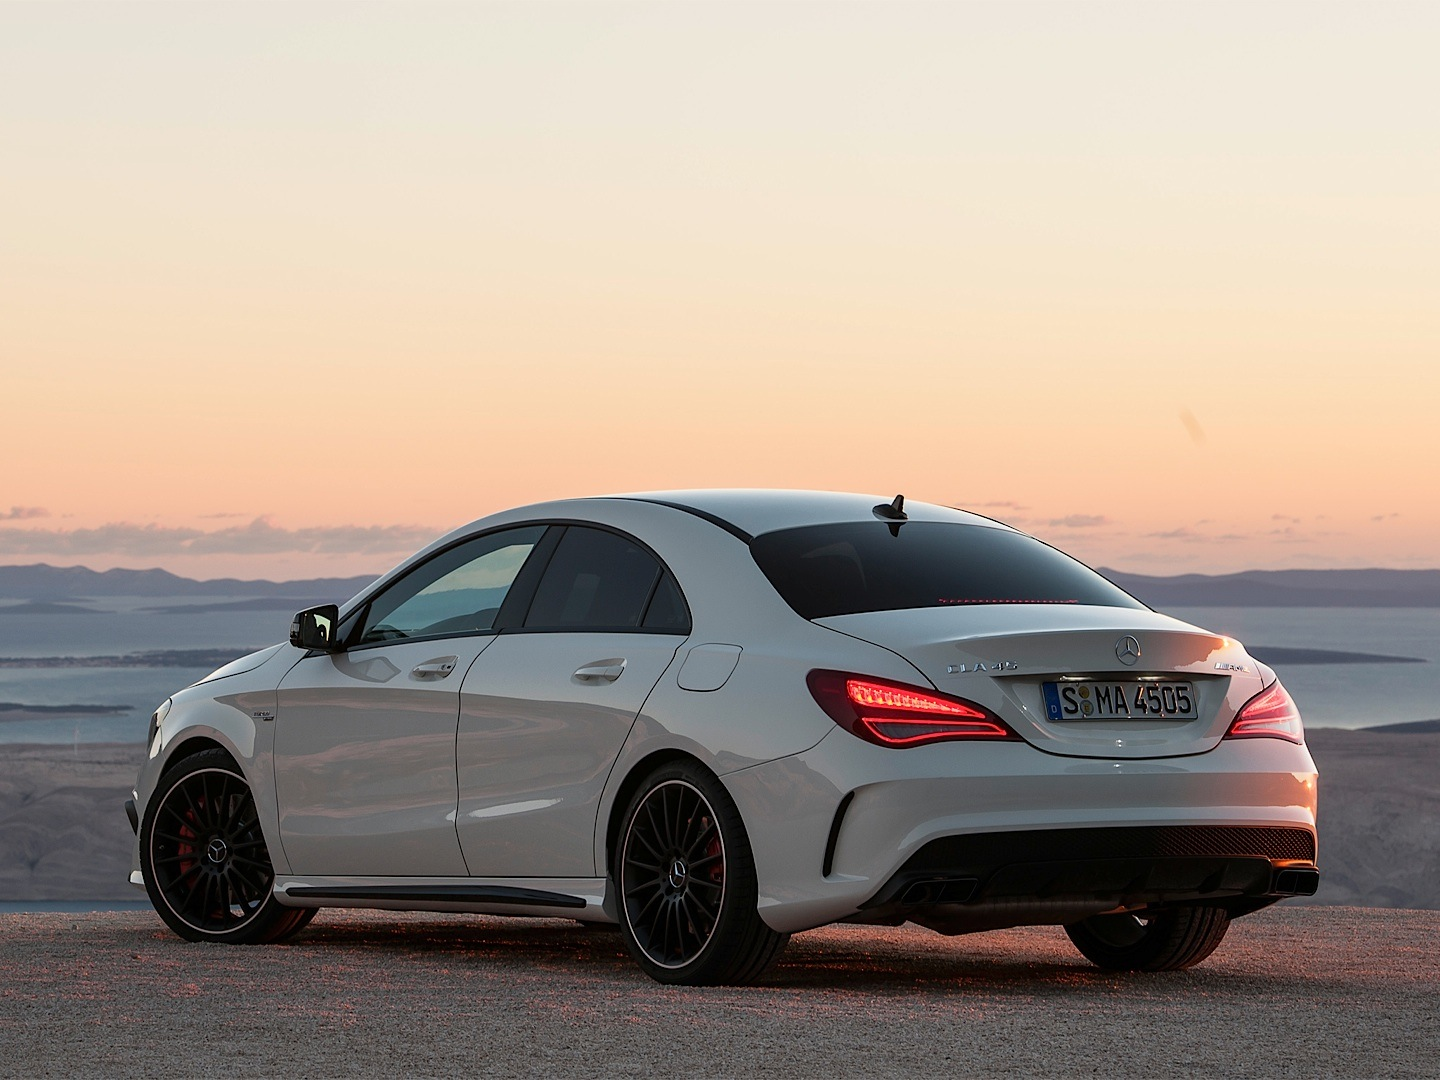 Mercedes benz cla 45 amg driven by vadimauto autoevolution for How much are mercedes benz